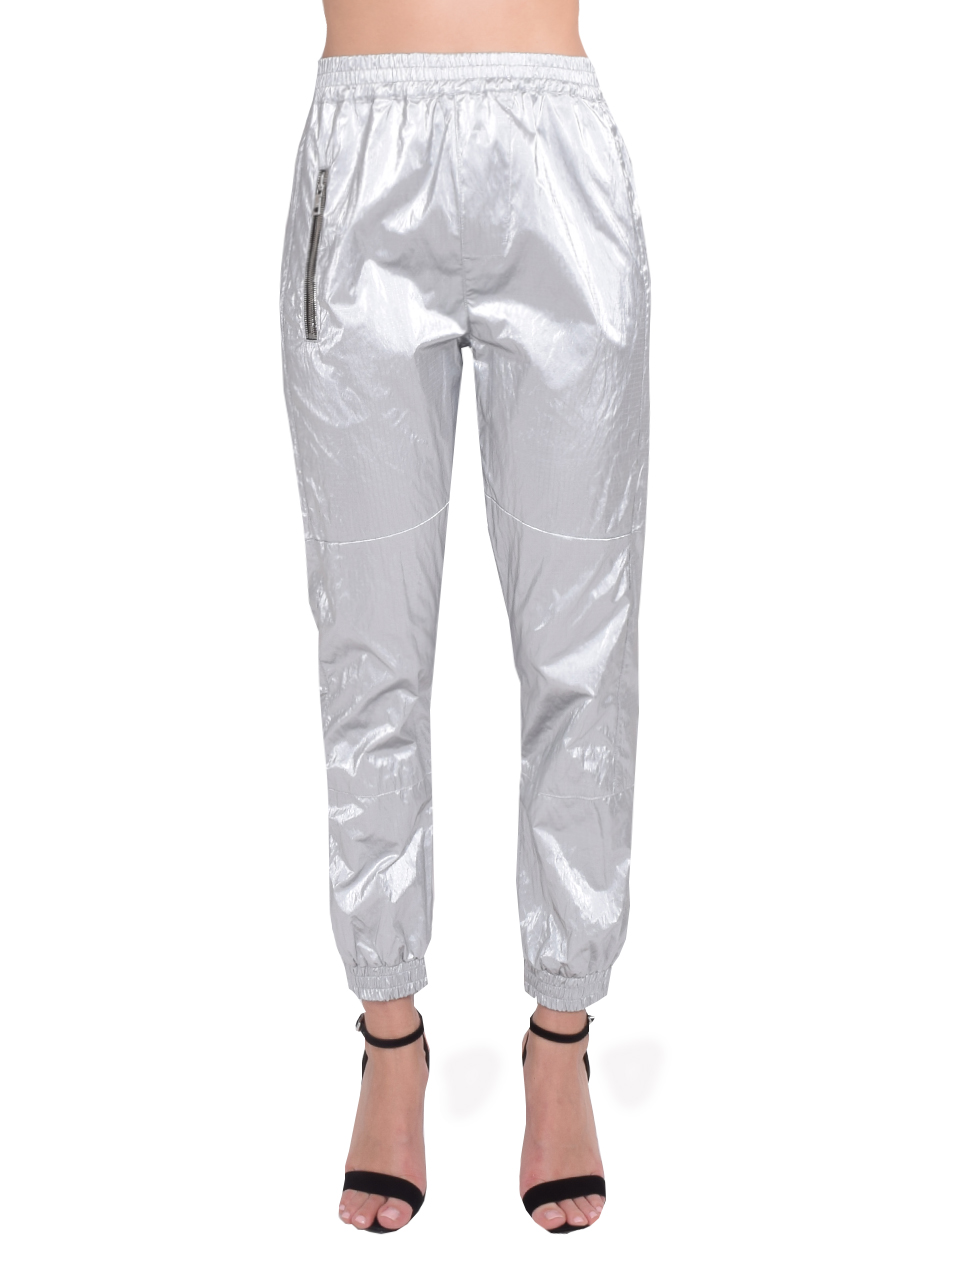 RtA Finn Sweatpants in Half Moon Front  X1https://cdn11.bigcommerce.com/s-3wu6n/products/33231/images/109583/67__40666.1590631351.244.365.jpg?c=2X2